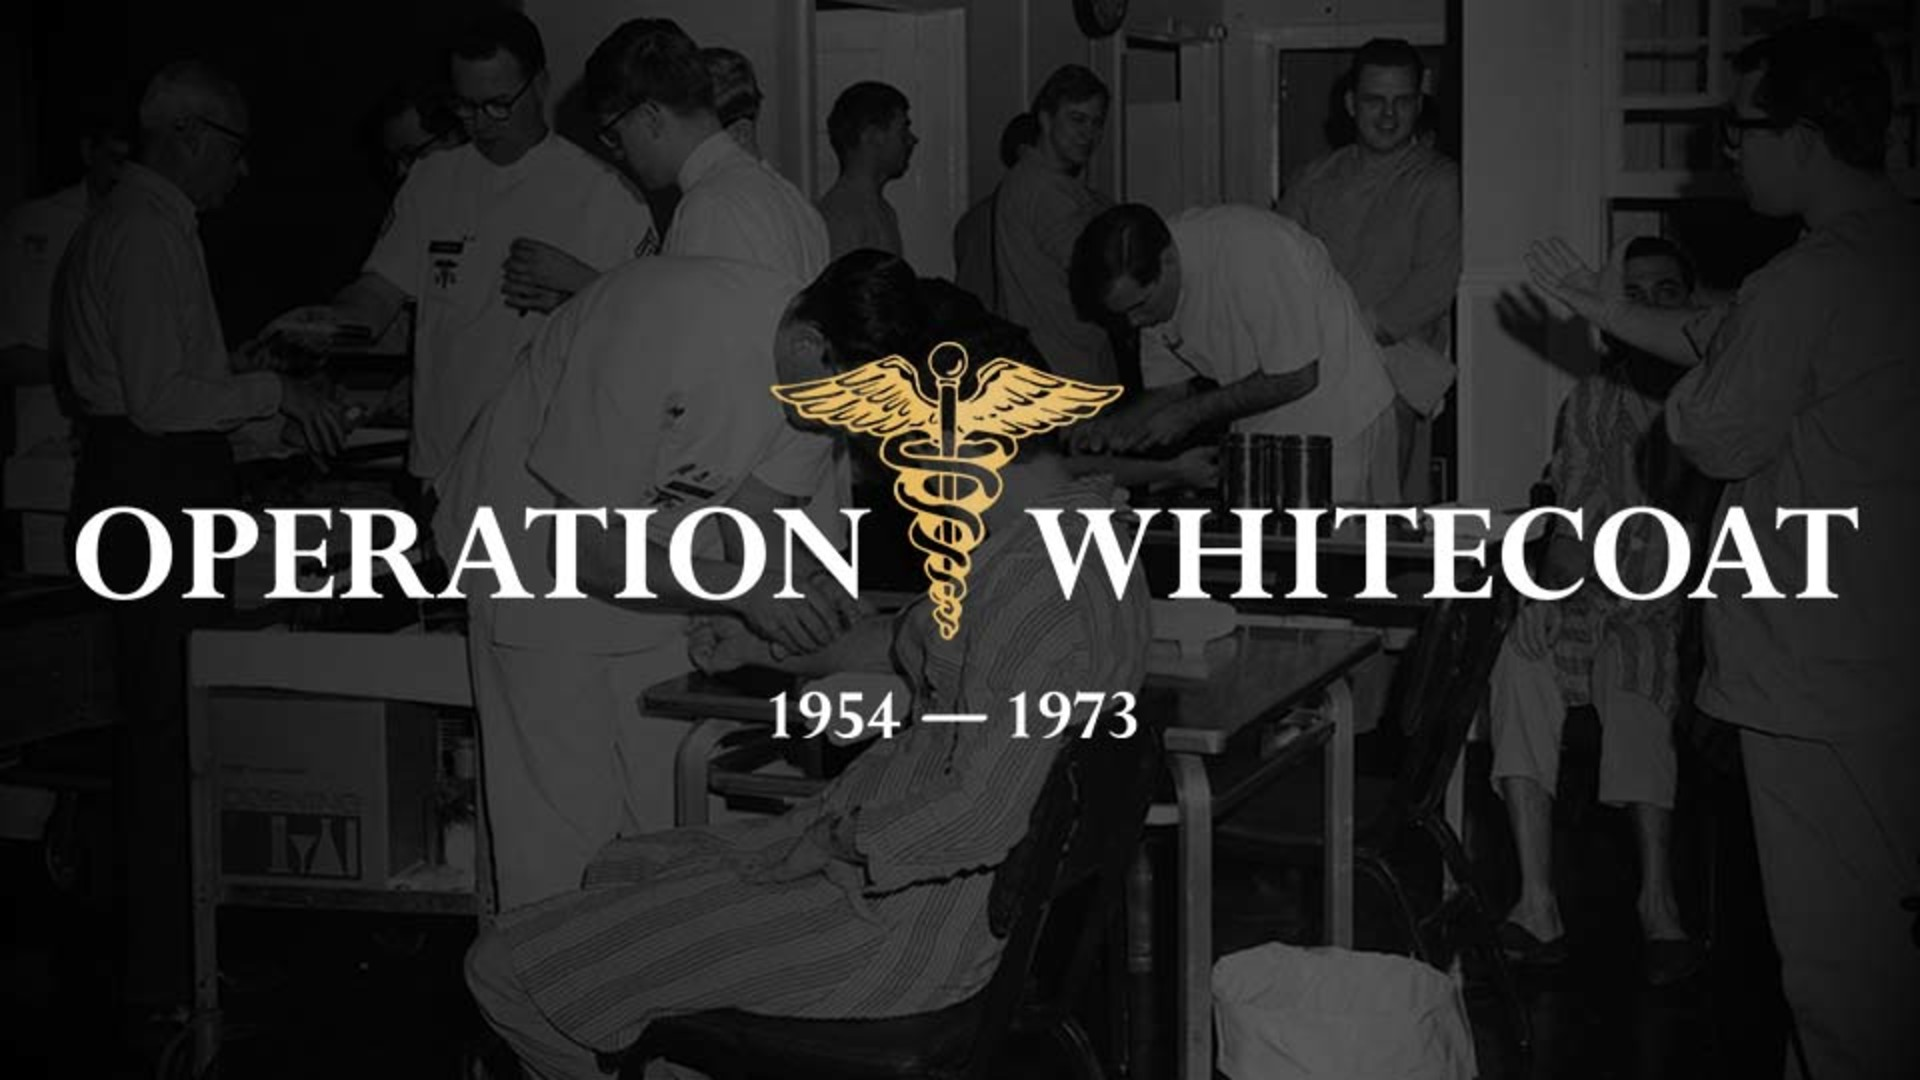 Valorous TV Operation Whitecoat seventh-day adventist military documentary